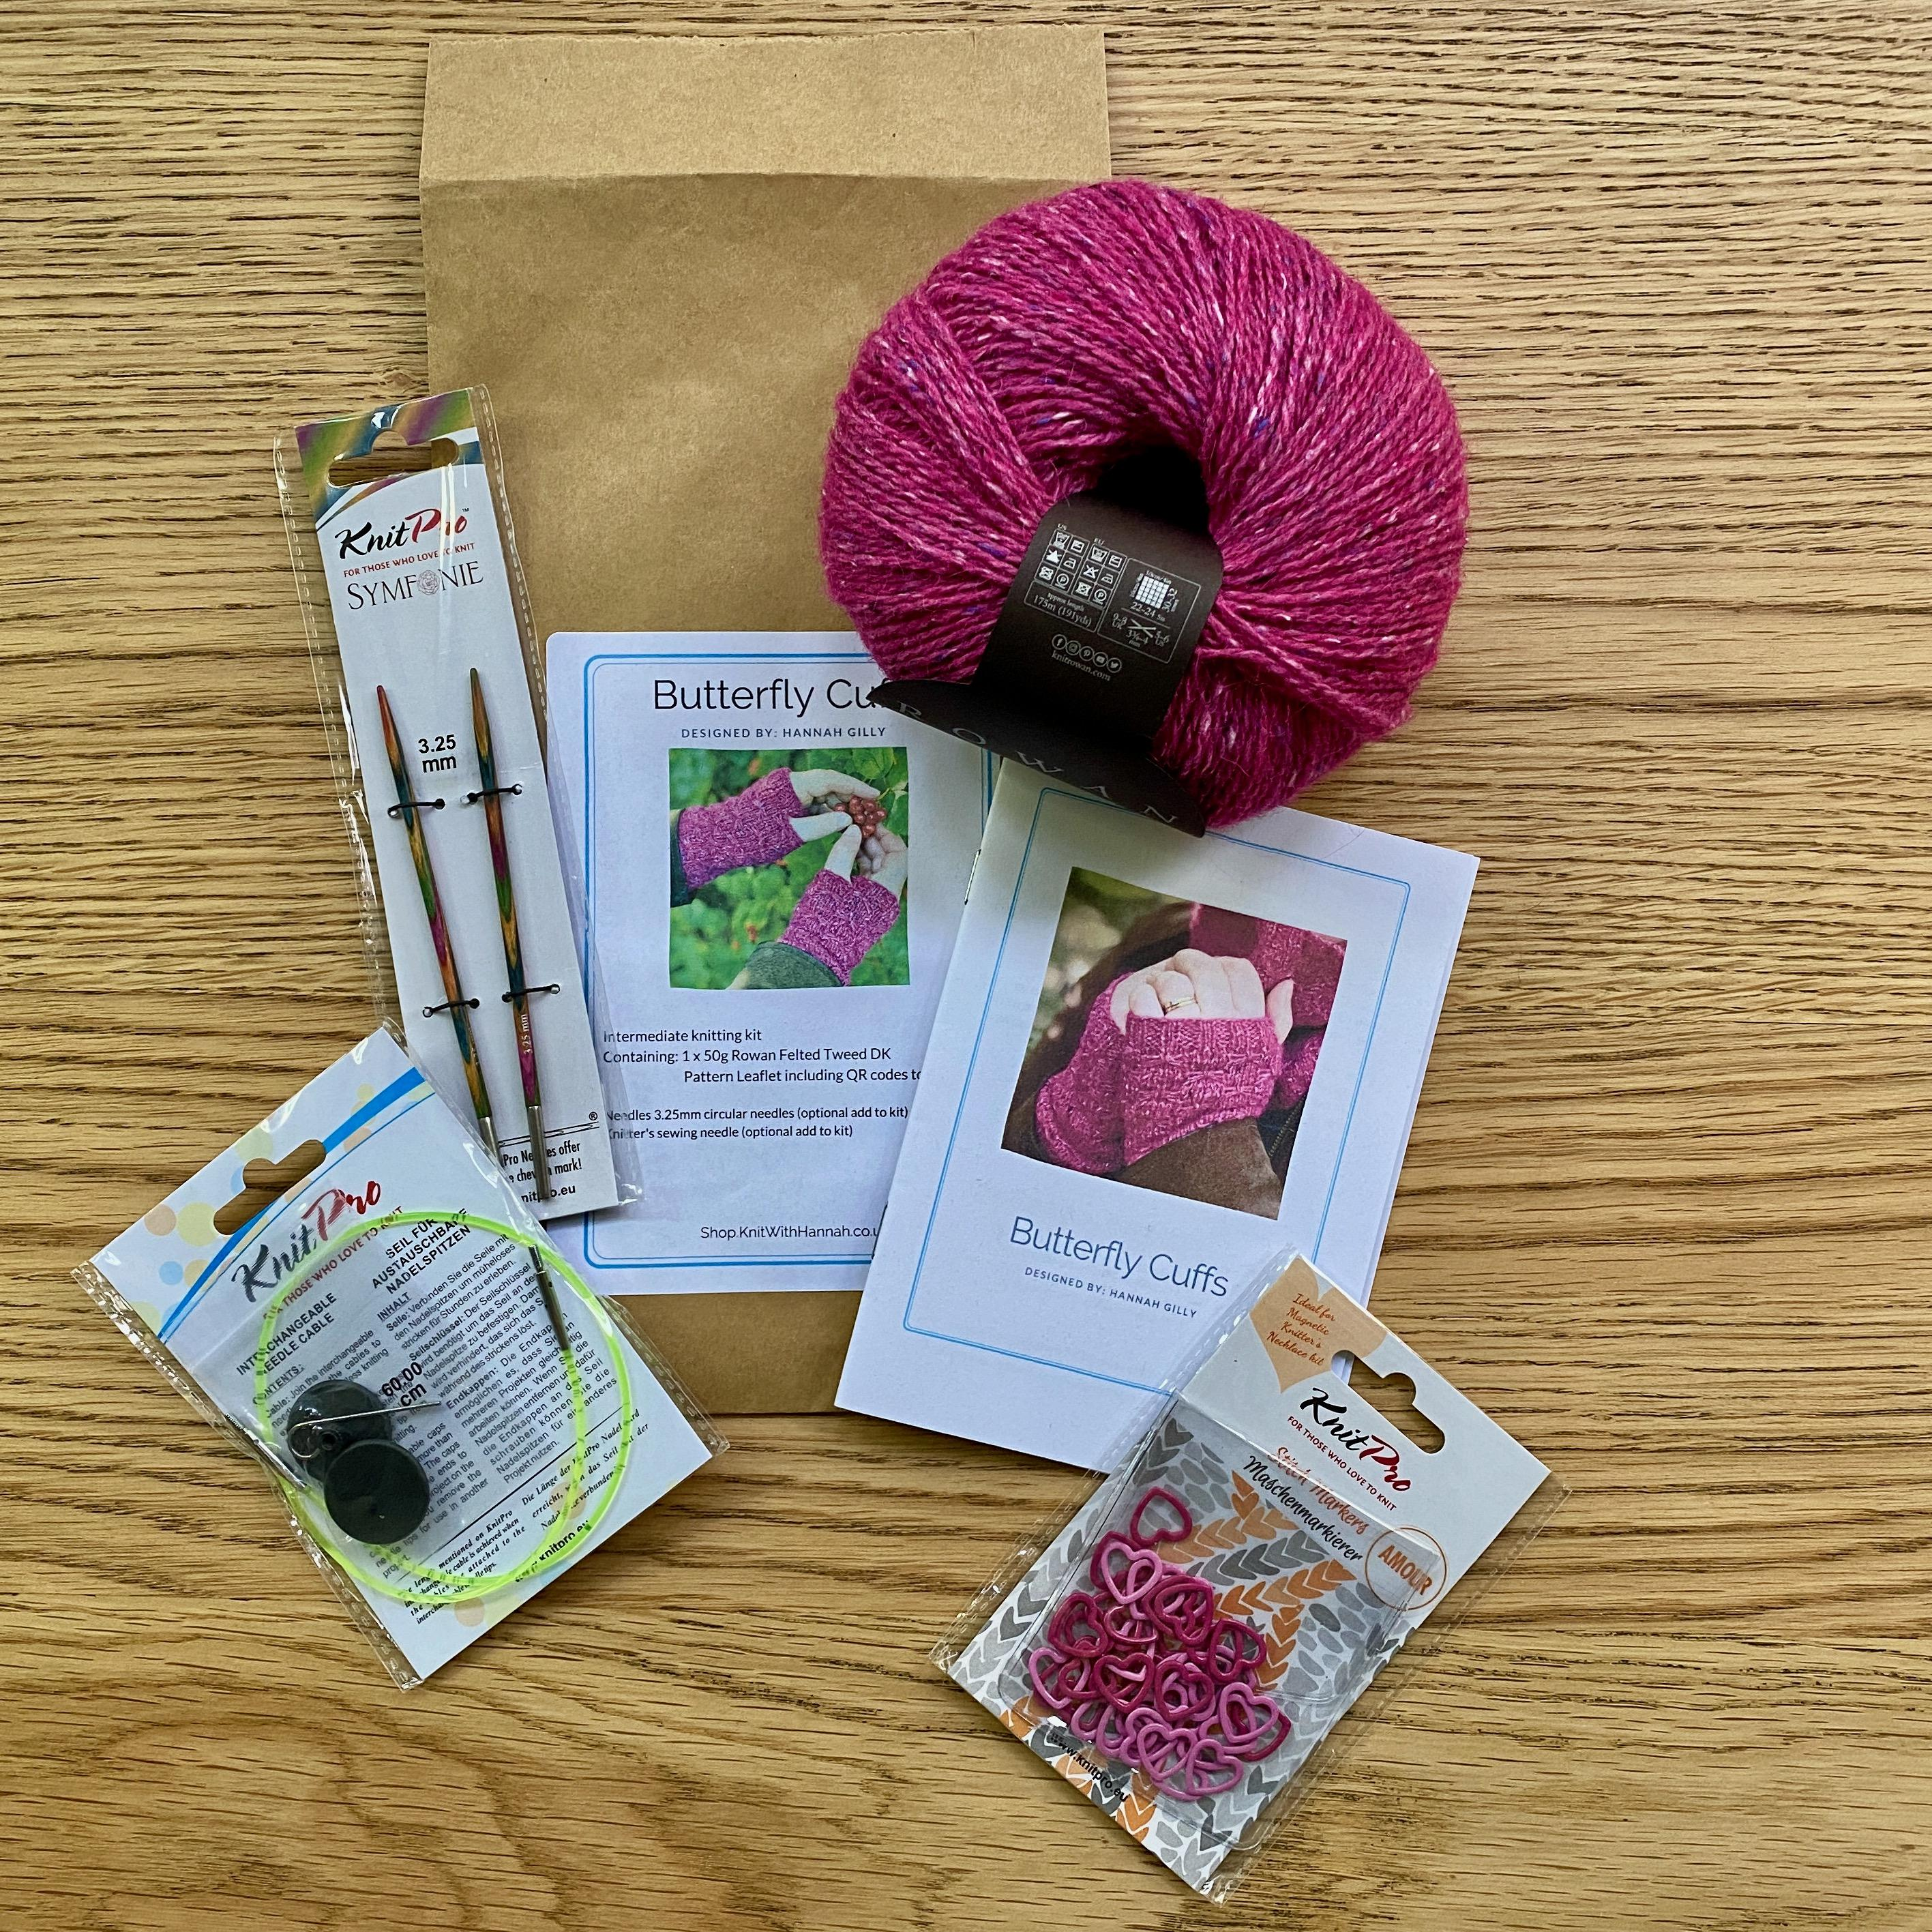 open knitting kit on wooden table, with pink yarn, pattern leaflet, circular needles and stitch markers